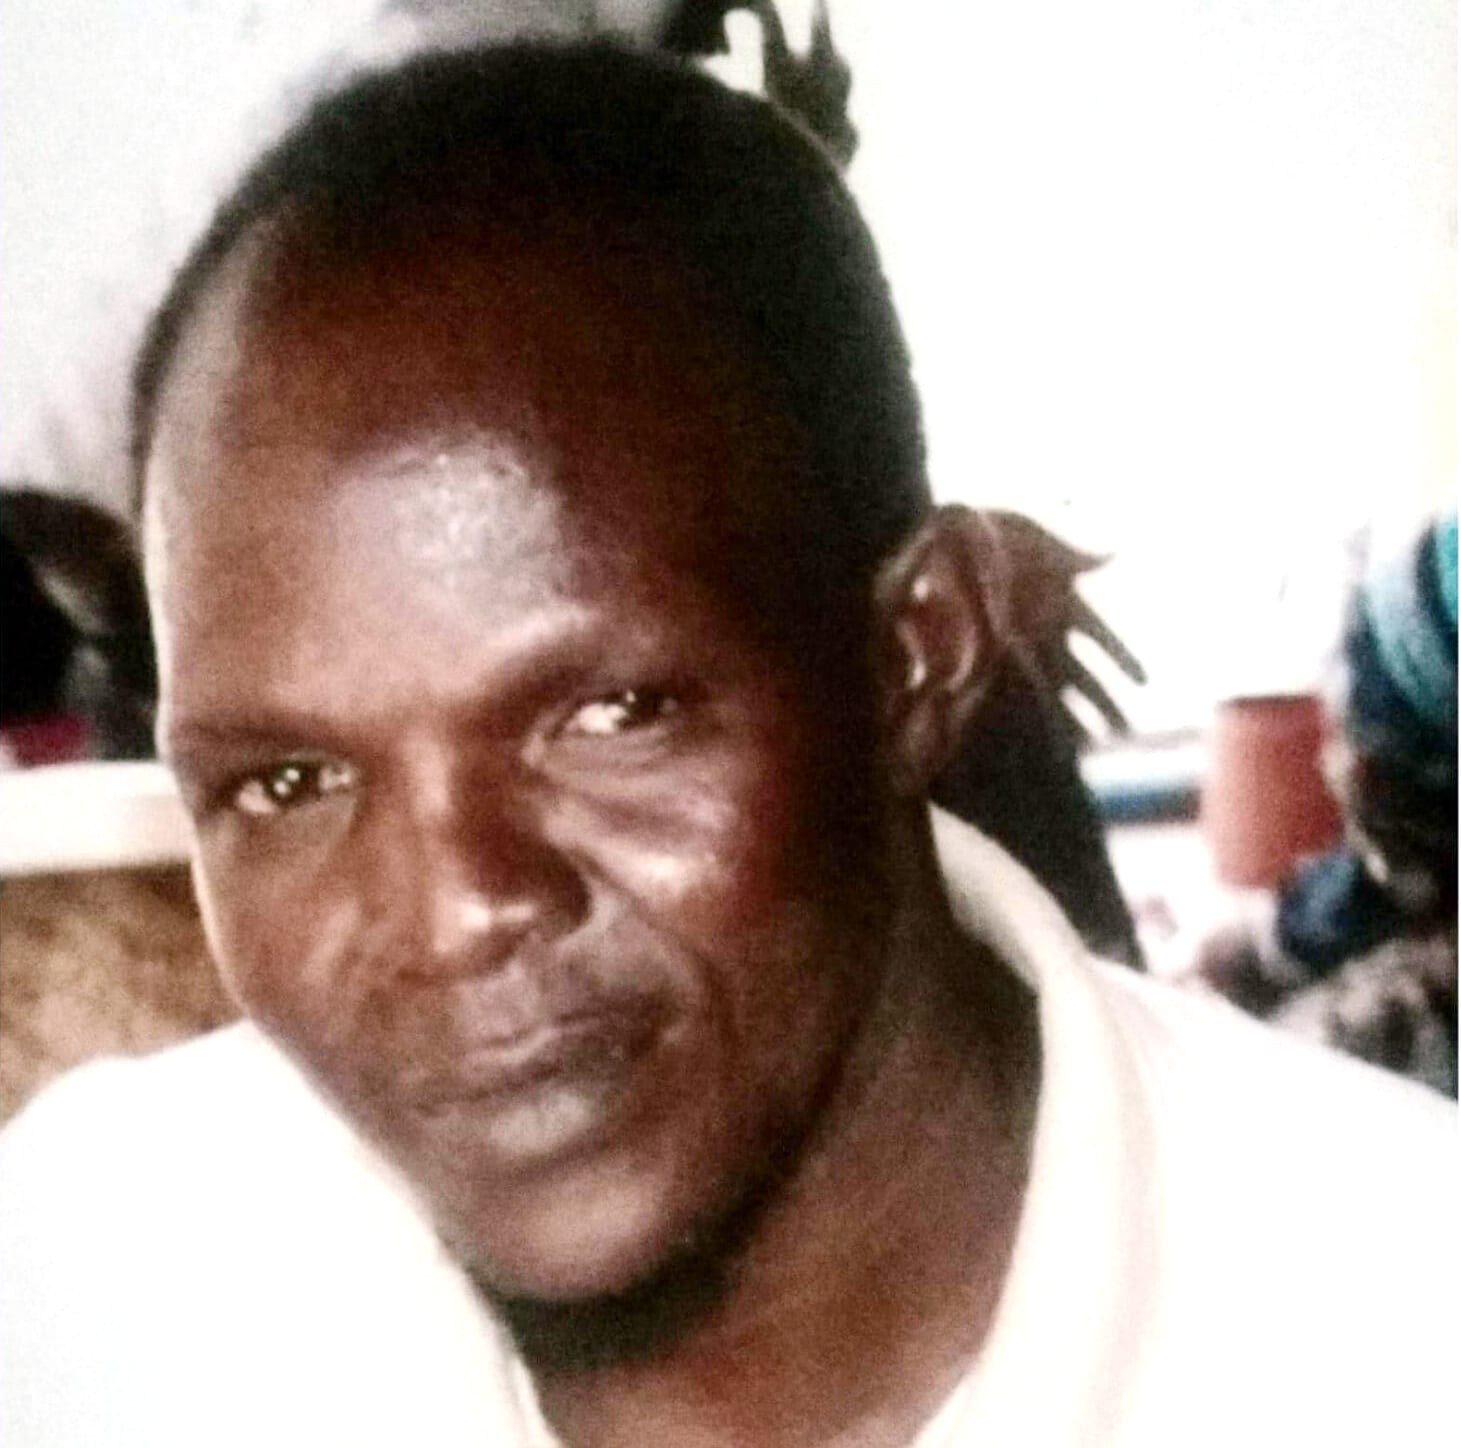 Mahamadi Ouédraogo who was killed along with photographer Leila Alaoui in the Al Qaeda attack in Ougadougou Burkina Faso, on Friday 15 January 2016. He had worked with Amnesty since 2008 as a driver.